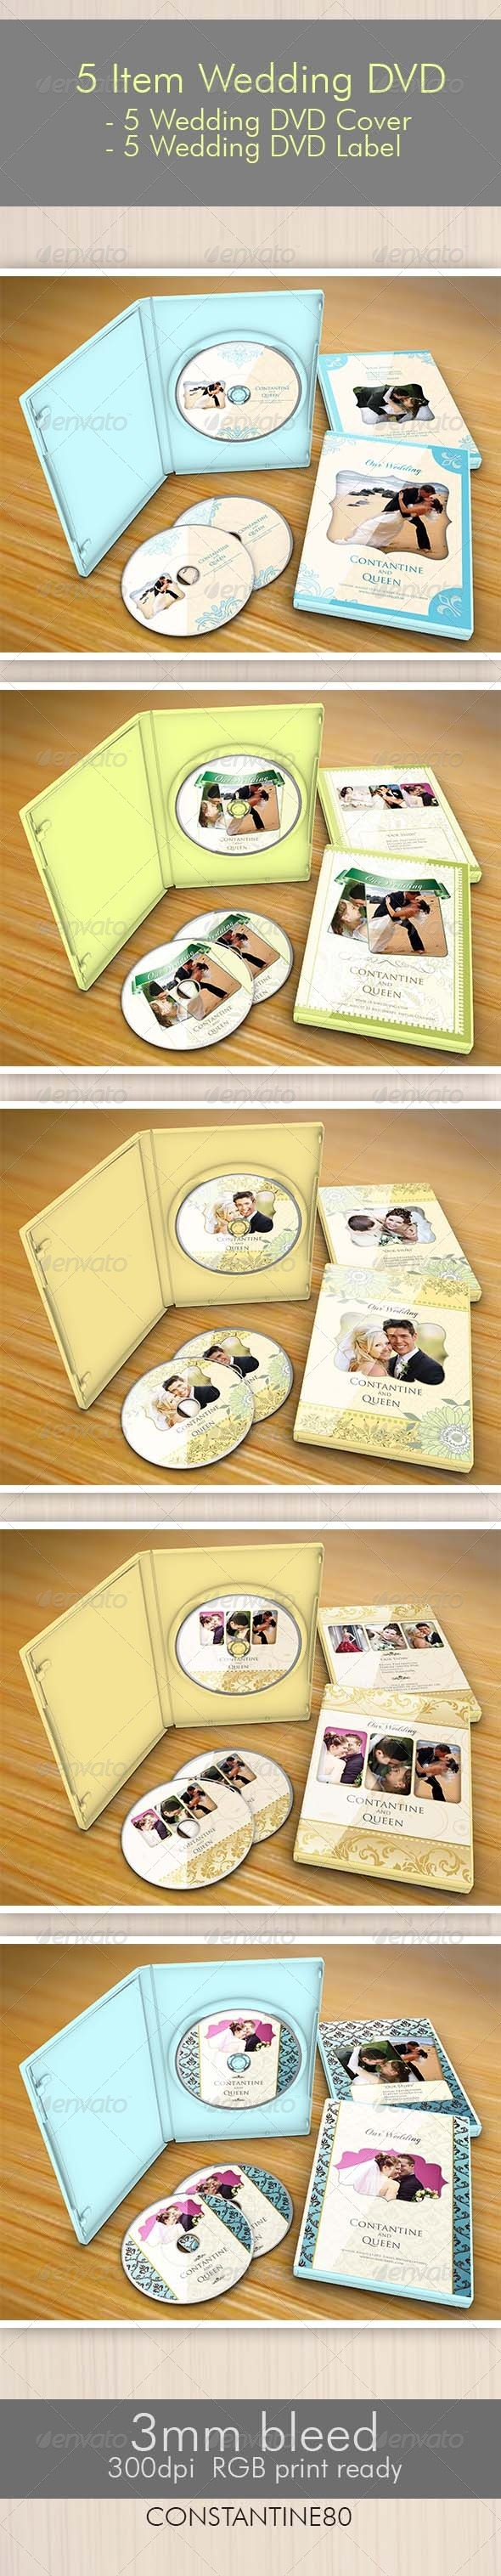 5 Item Wedding DVD - CD & DVD artwork Print Templates